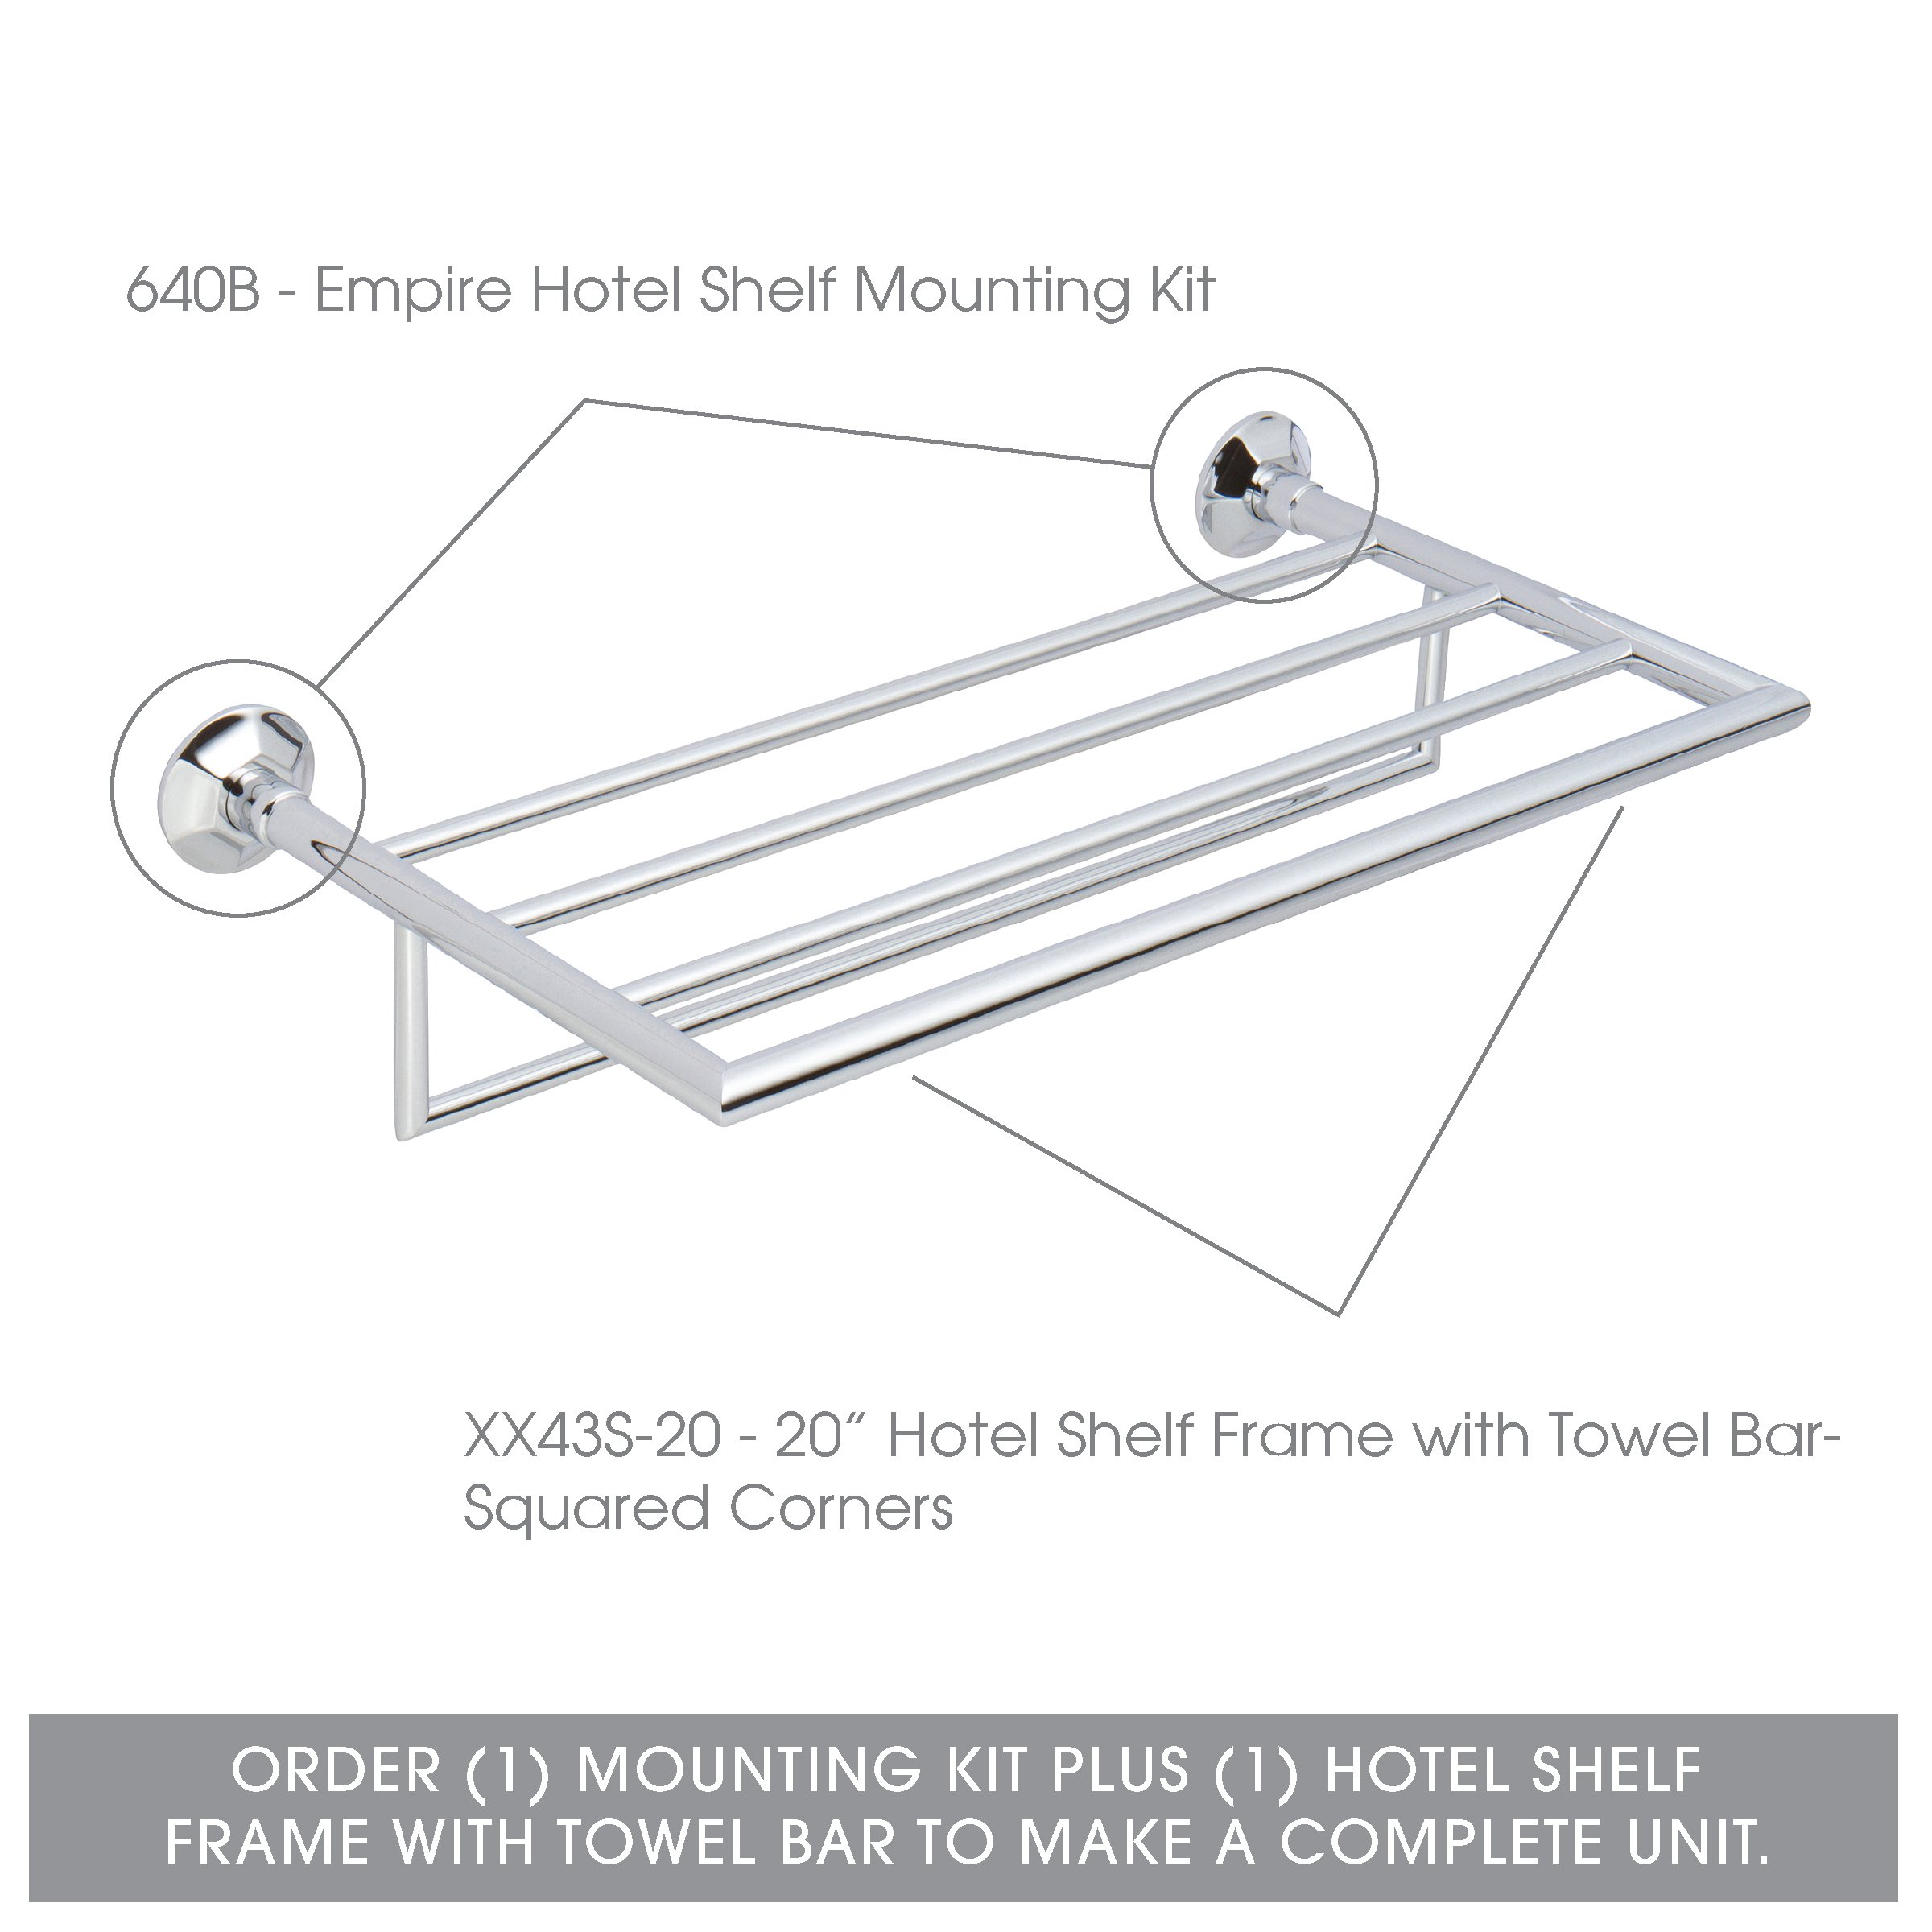 Ginger Empire Hotel Shelf Mounting Kit - 640B/PC - Wall Mounted Towel Rack Trim Brackets - Polished Chrome - Mounting Kit Only by Ginger (Image #4)